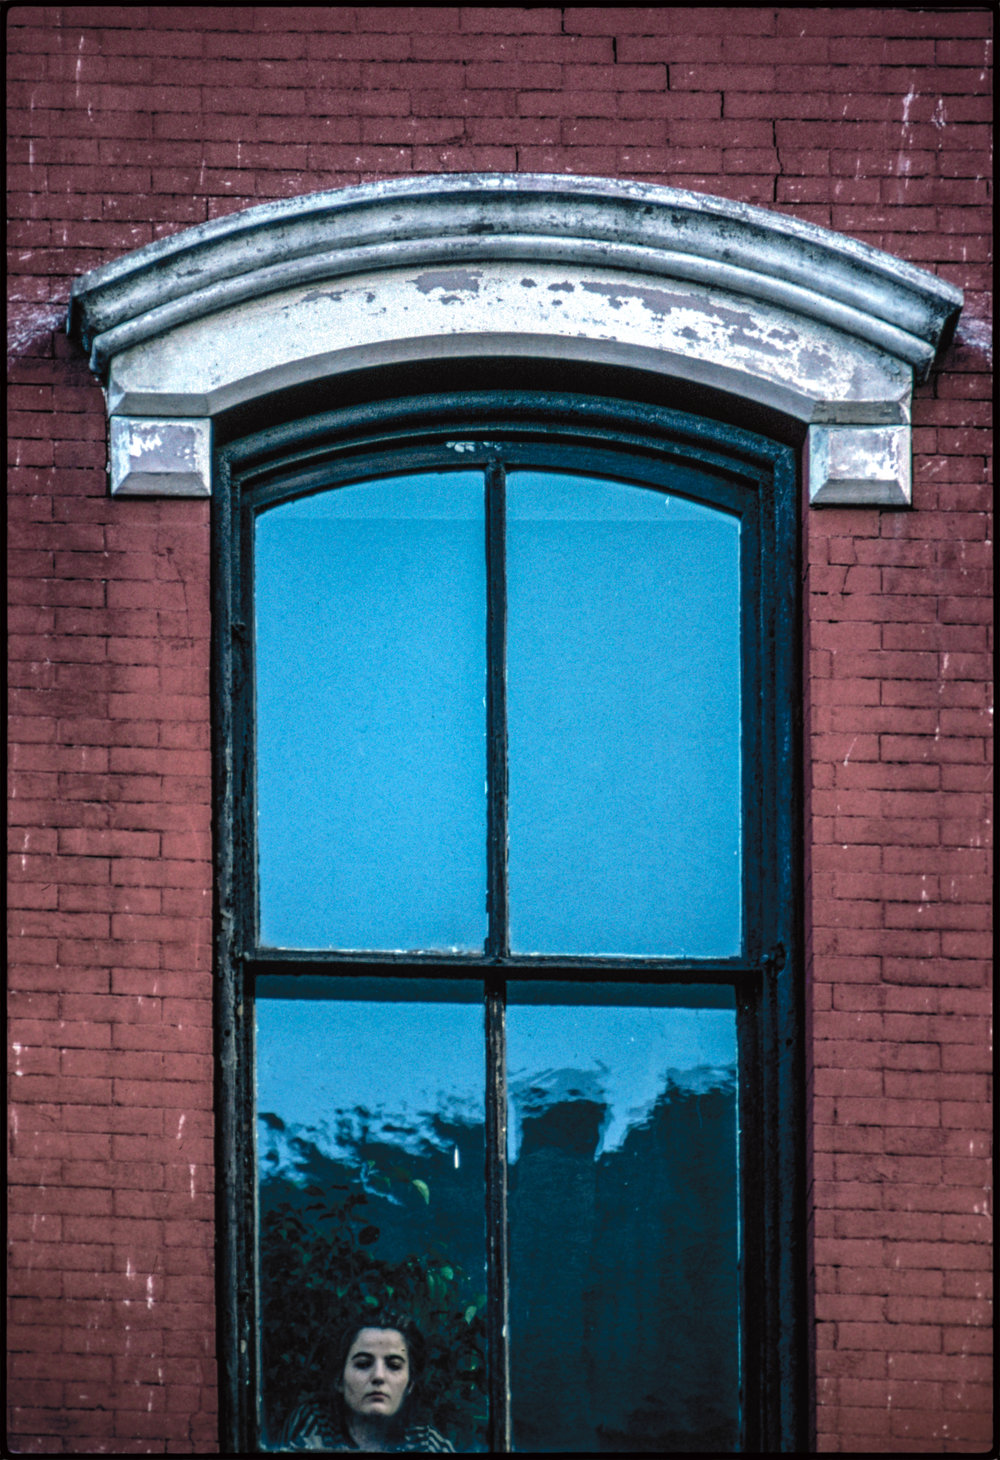 face-in-window-copy-2.jpg